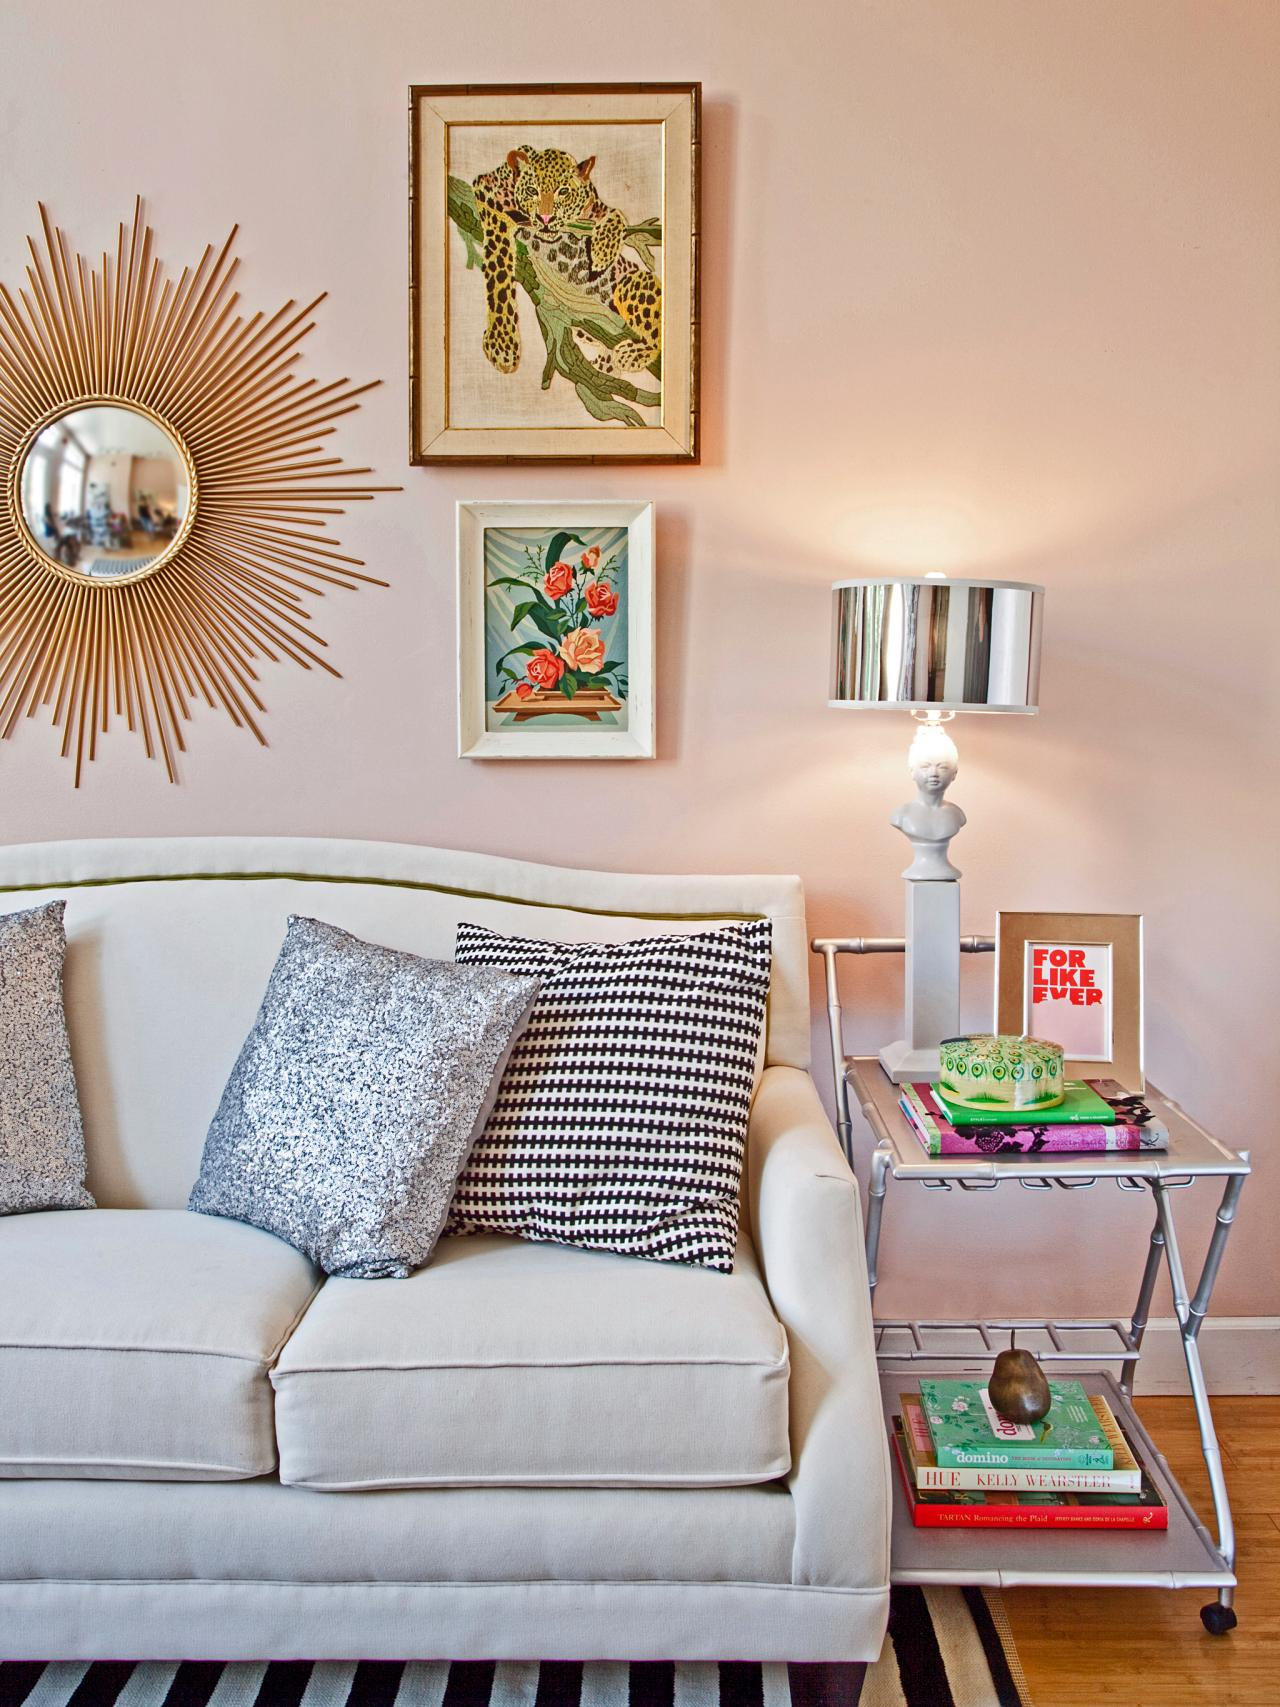 Excellent Wall Decorating Ideas for Living Room - HomesFeed on Room Wall Decor id=68740